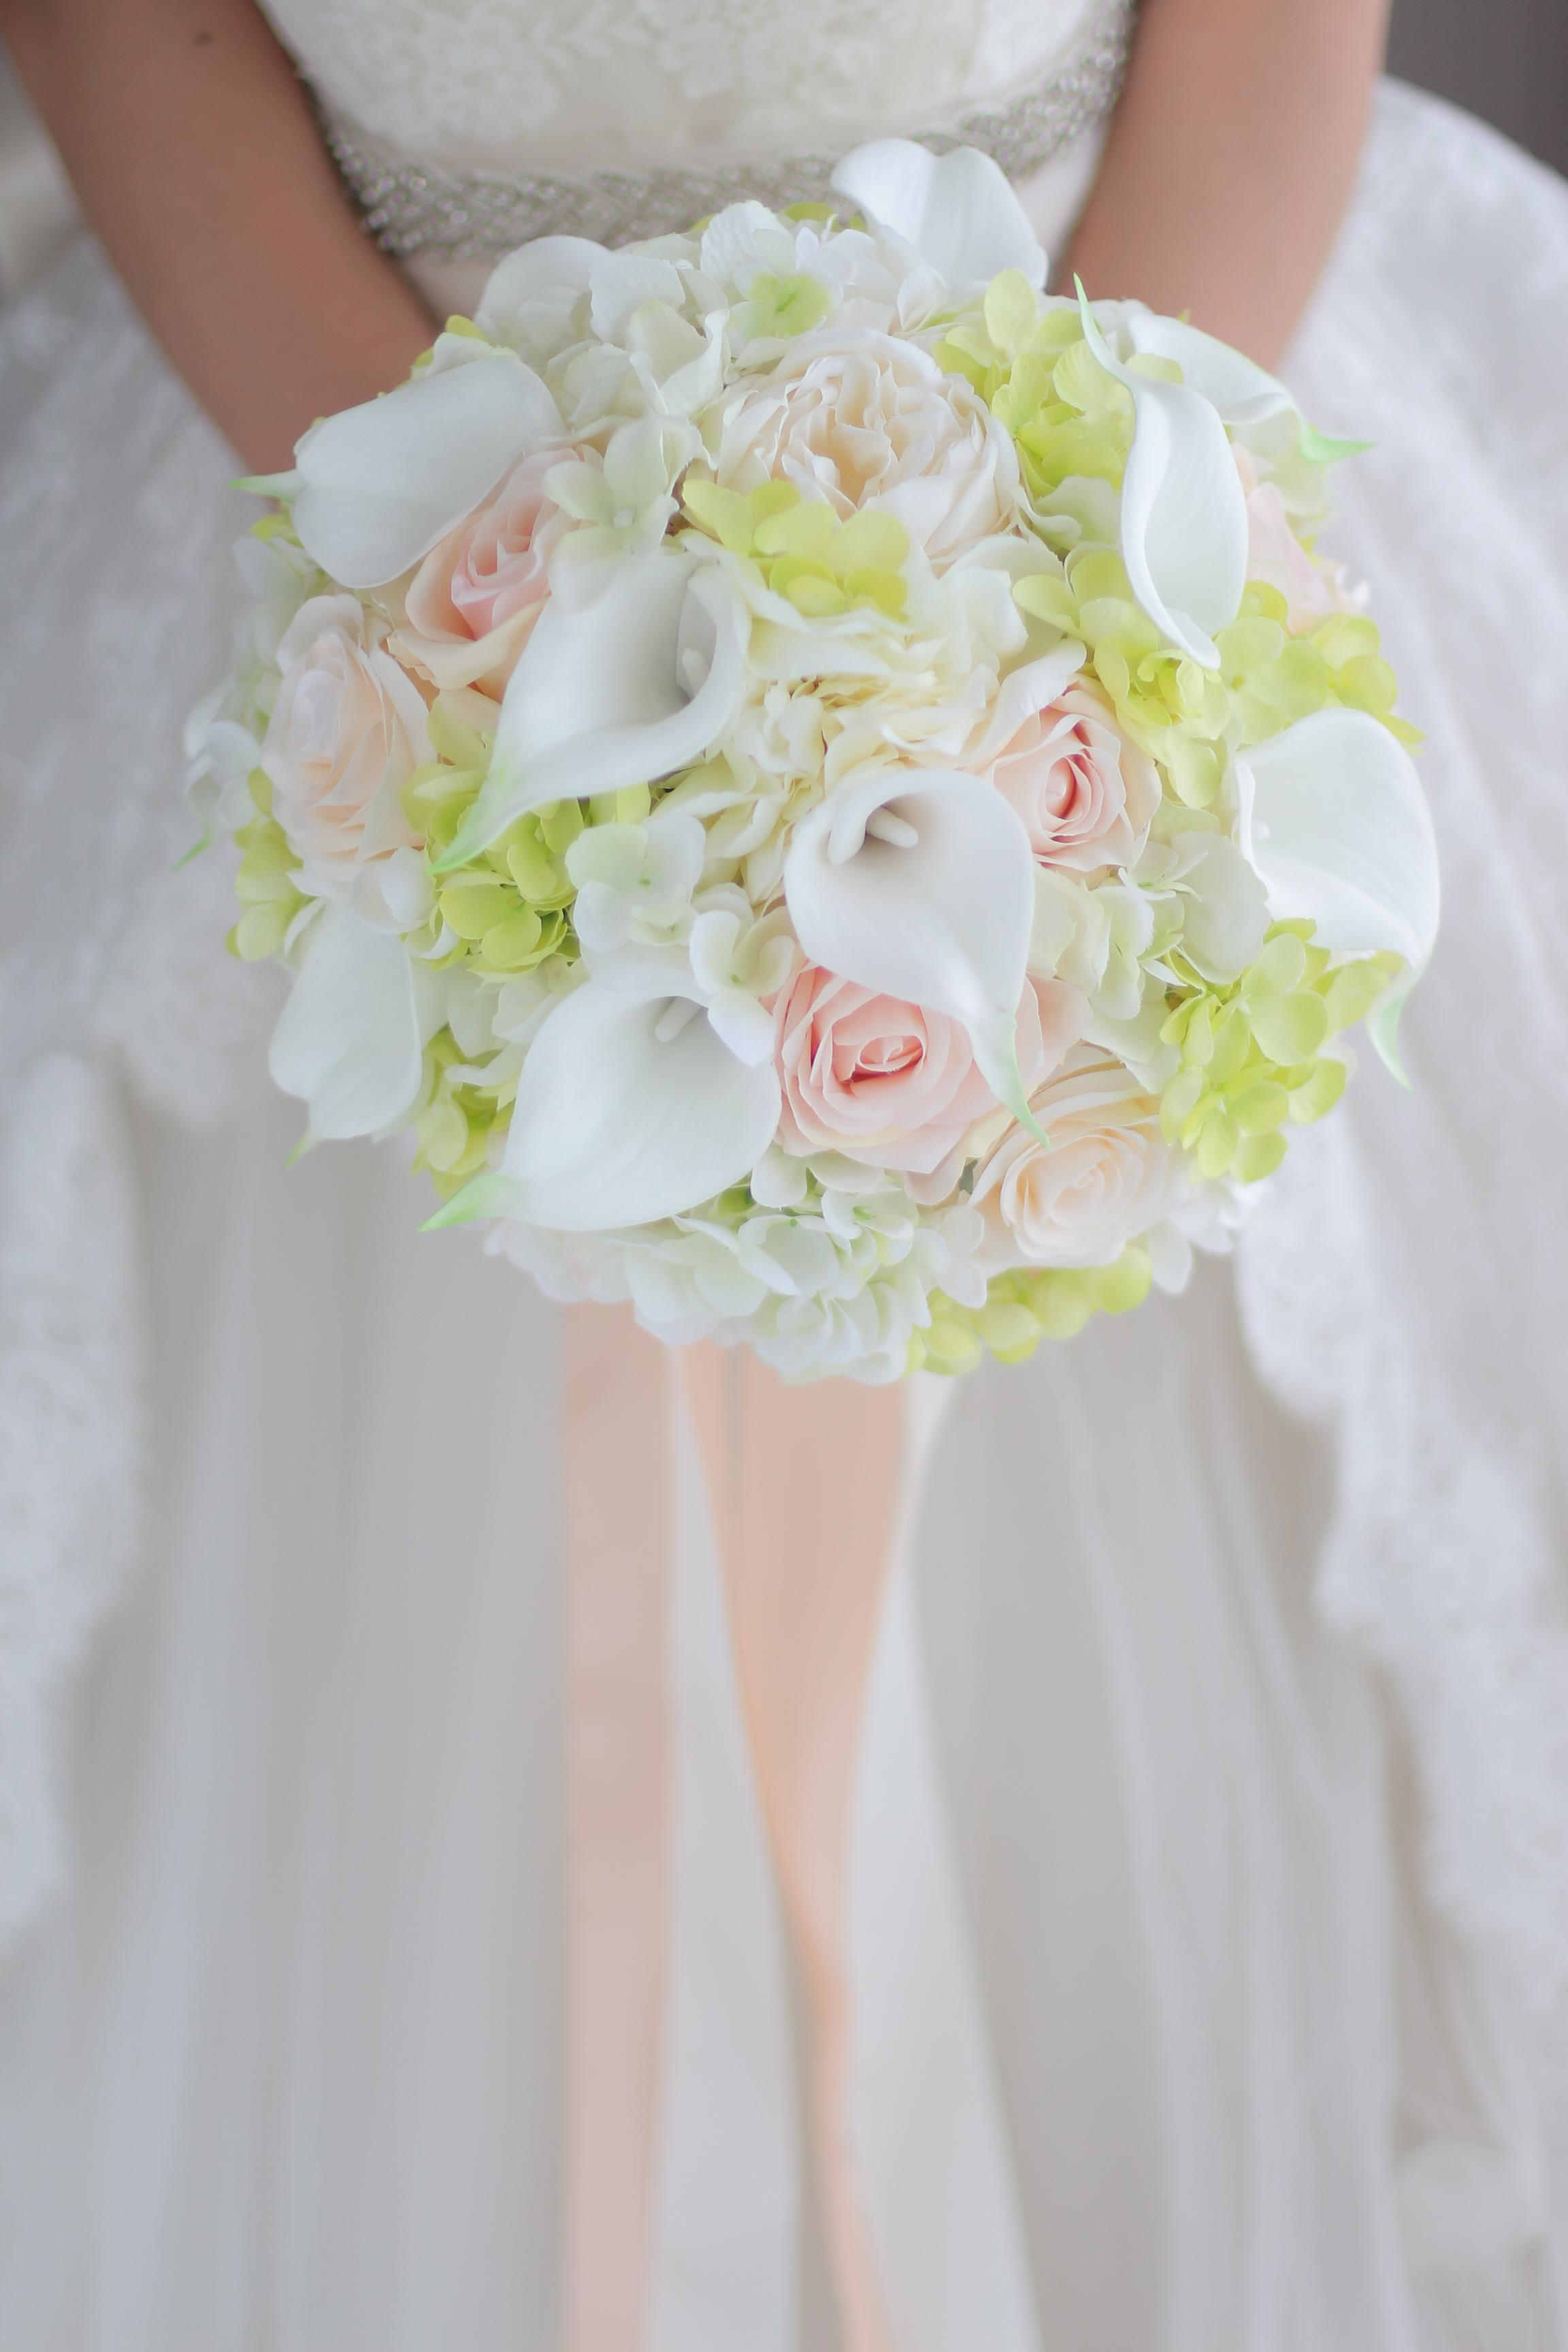 Latest Wedding Bouquet White Champagne Rose Calla Lily Green